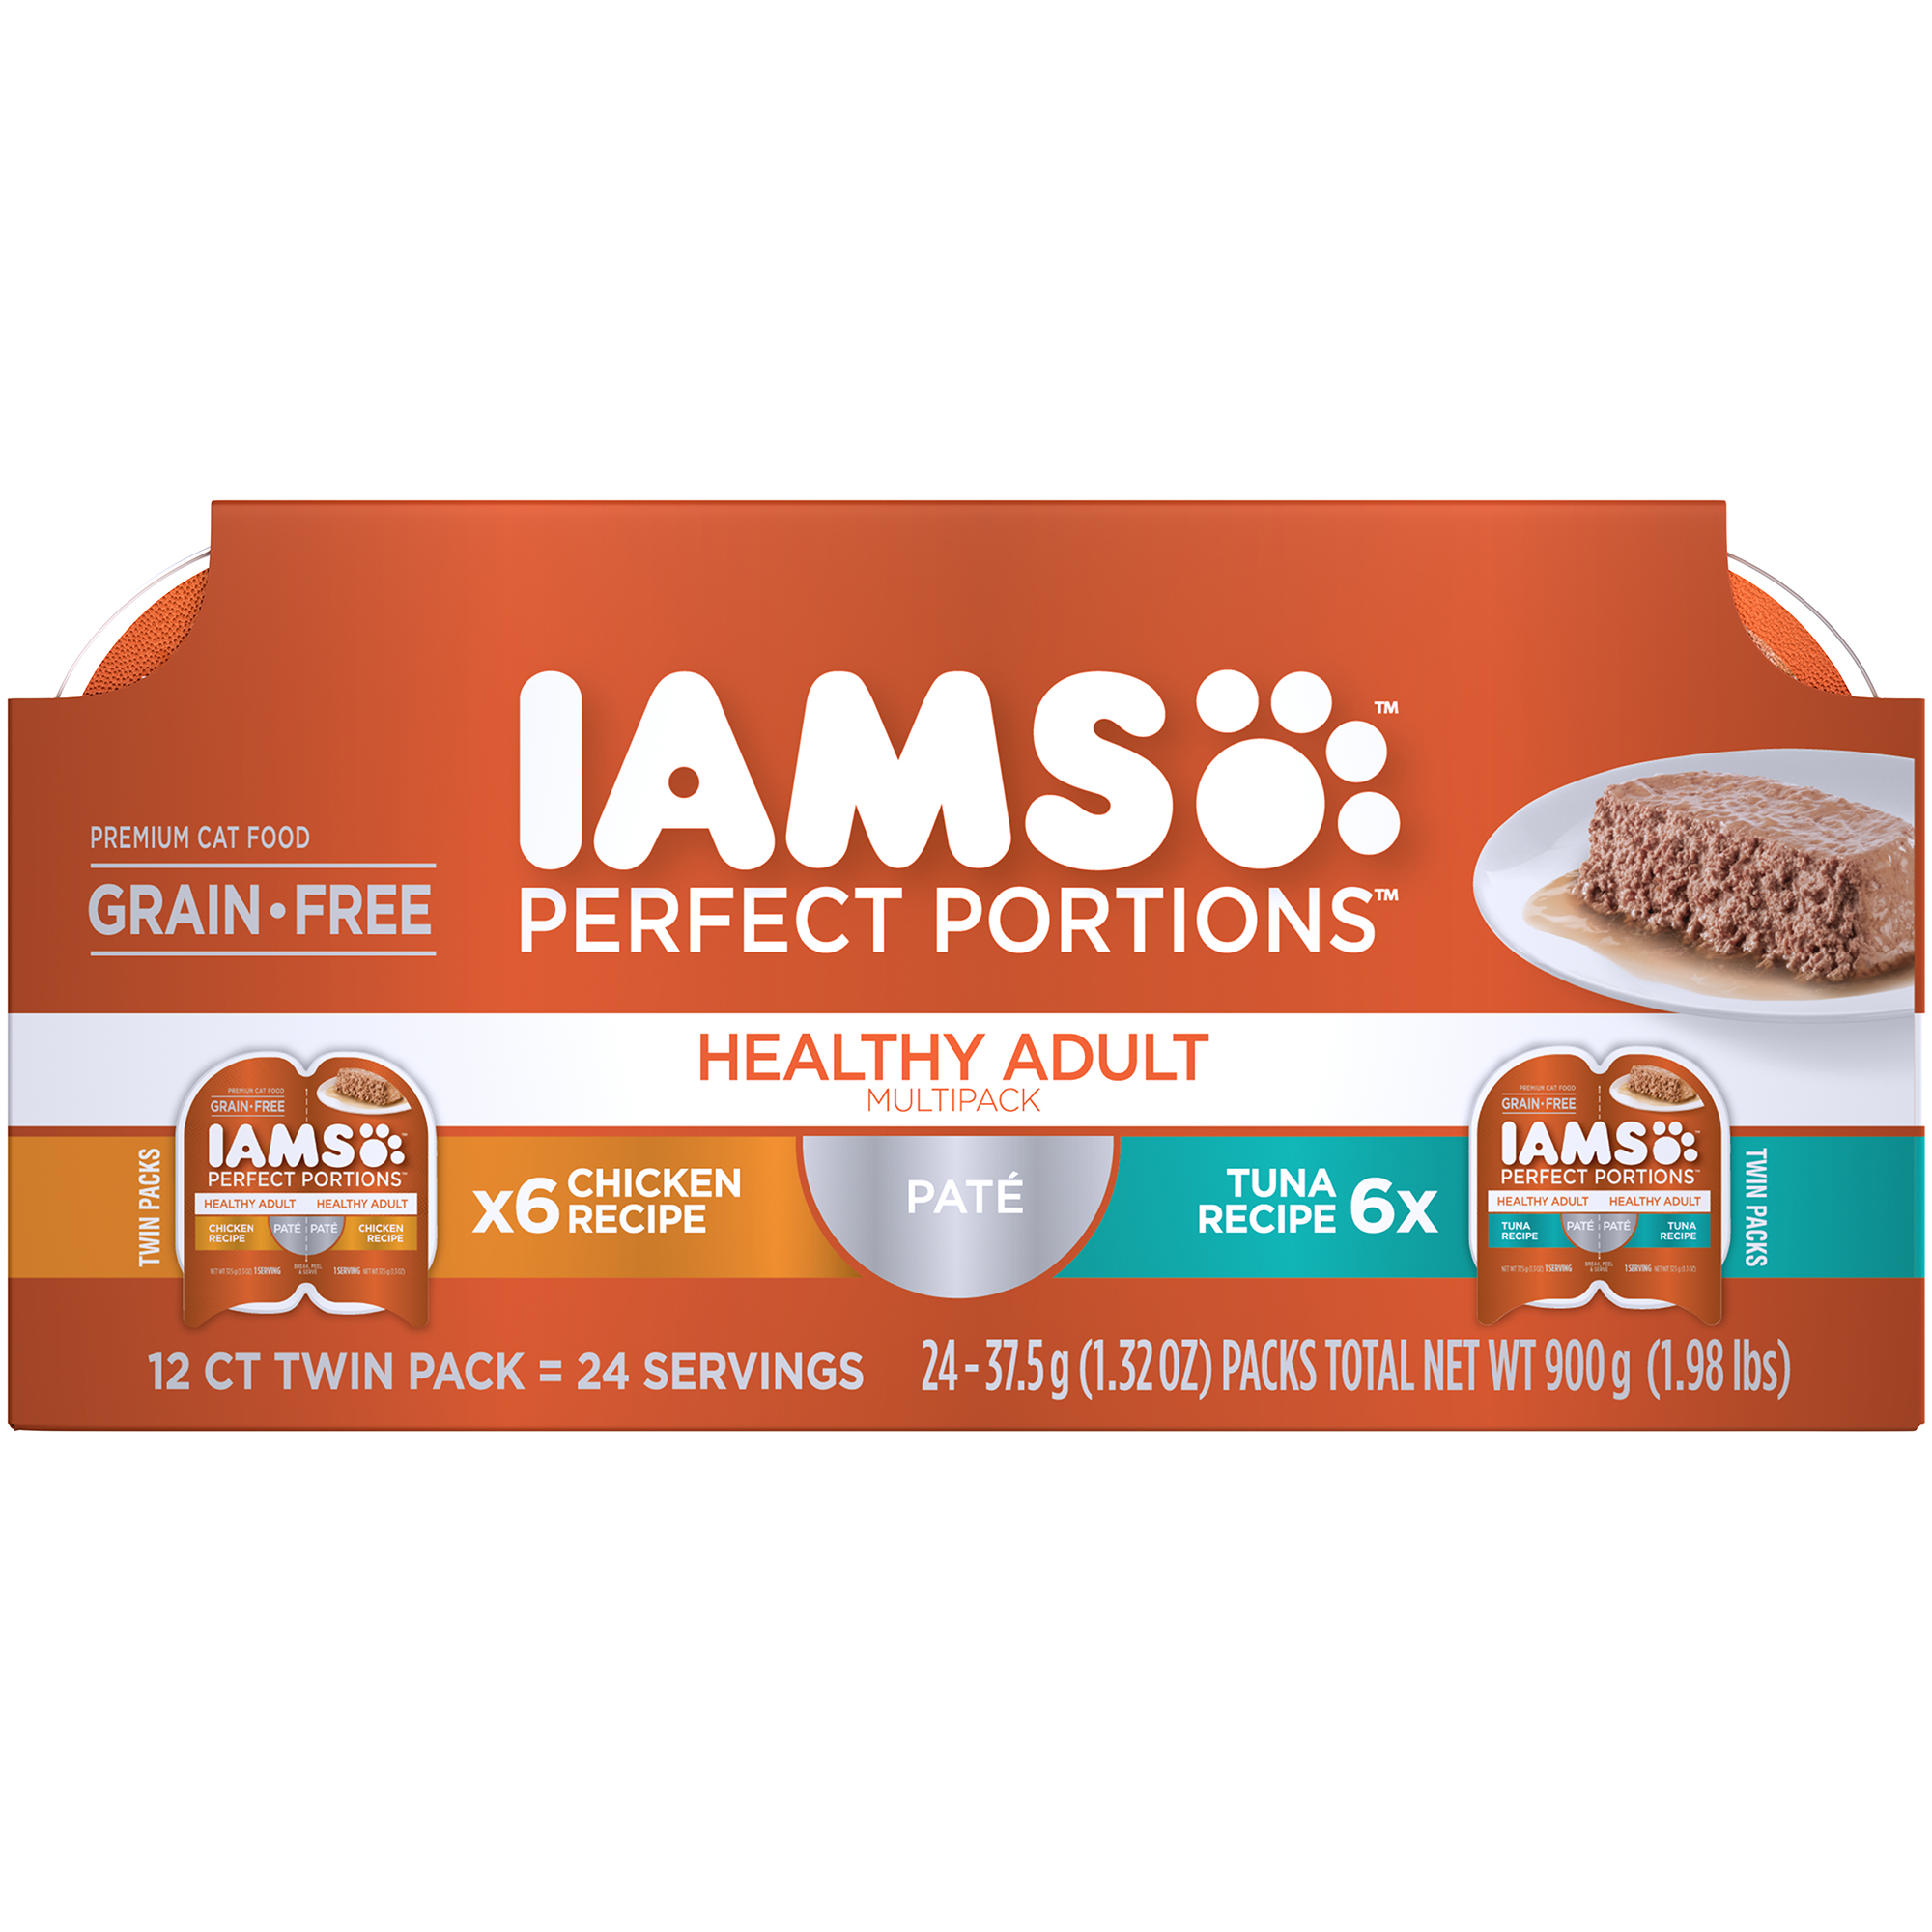 IAMS PERFECT PORTIONS Grain Free Adult Wet Cat Food Pate Chicken Recipe and Tuna Recipe Variety Pack, (12) 2.6 oz. Twin-Pack Trays